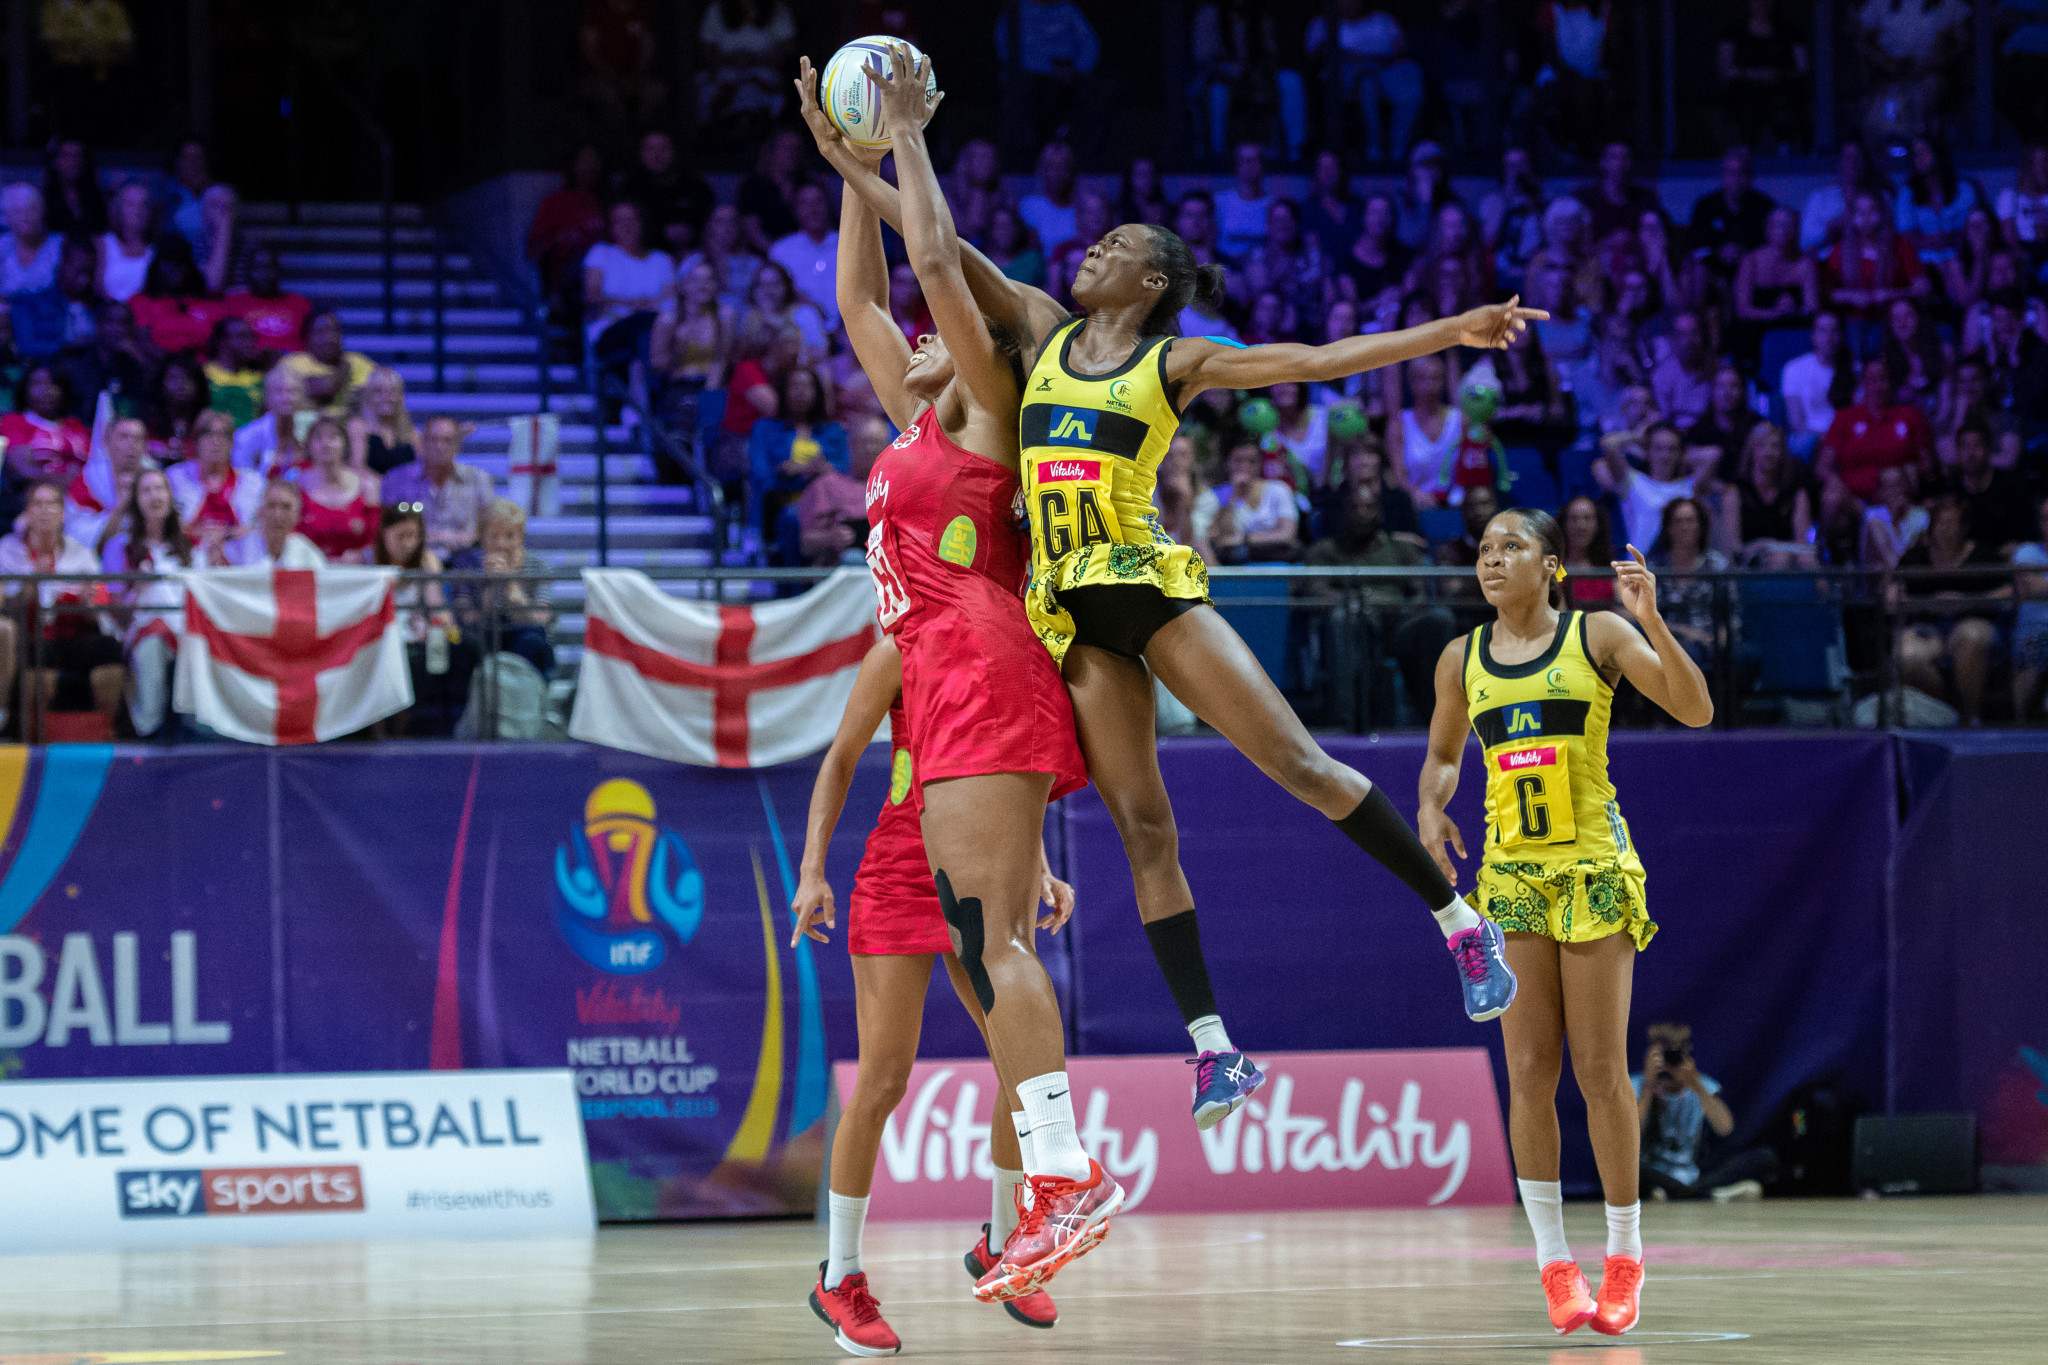 Jamaica moved up to third in the International Netball Federation world rankings ©Getty Images